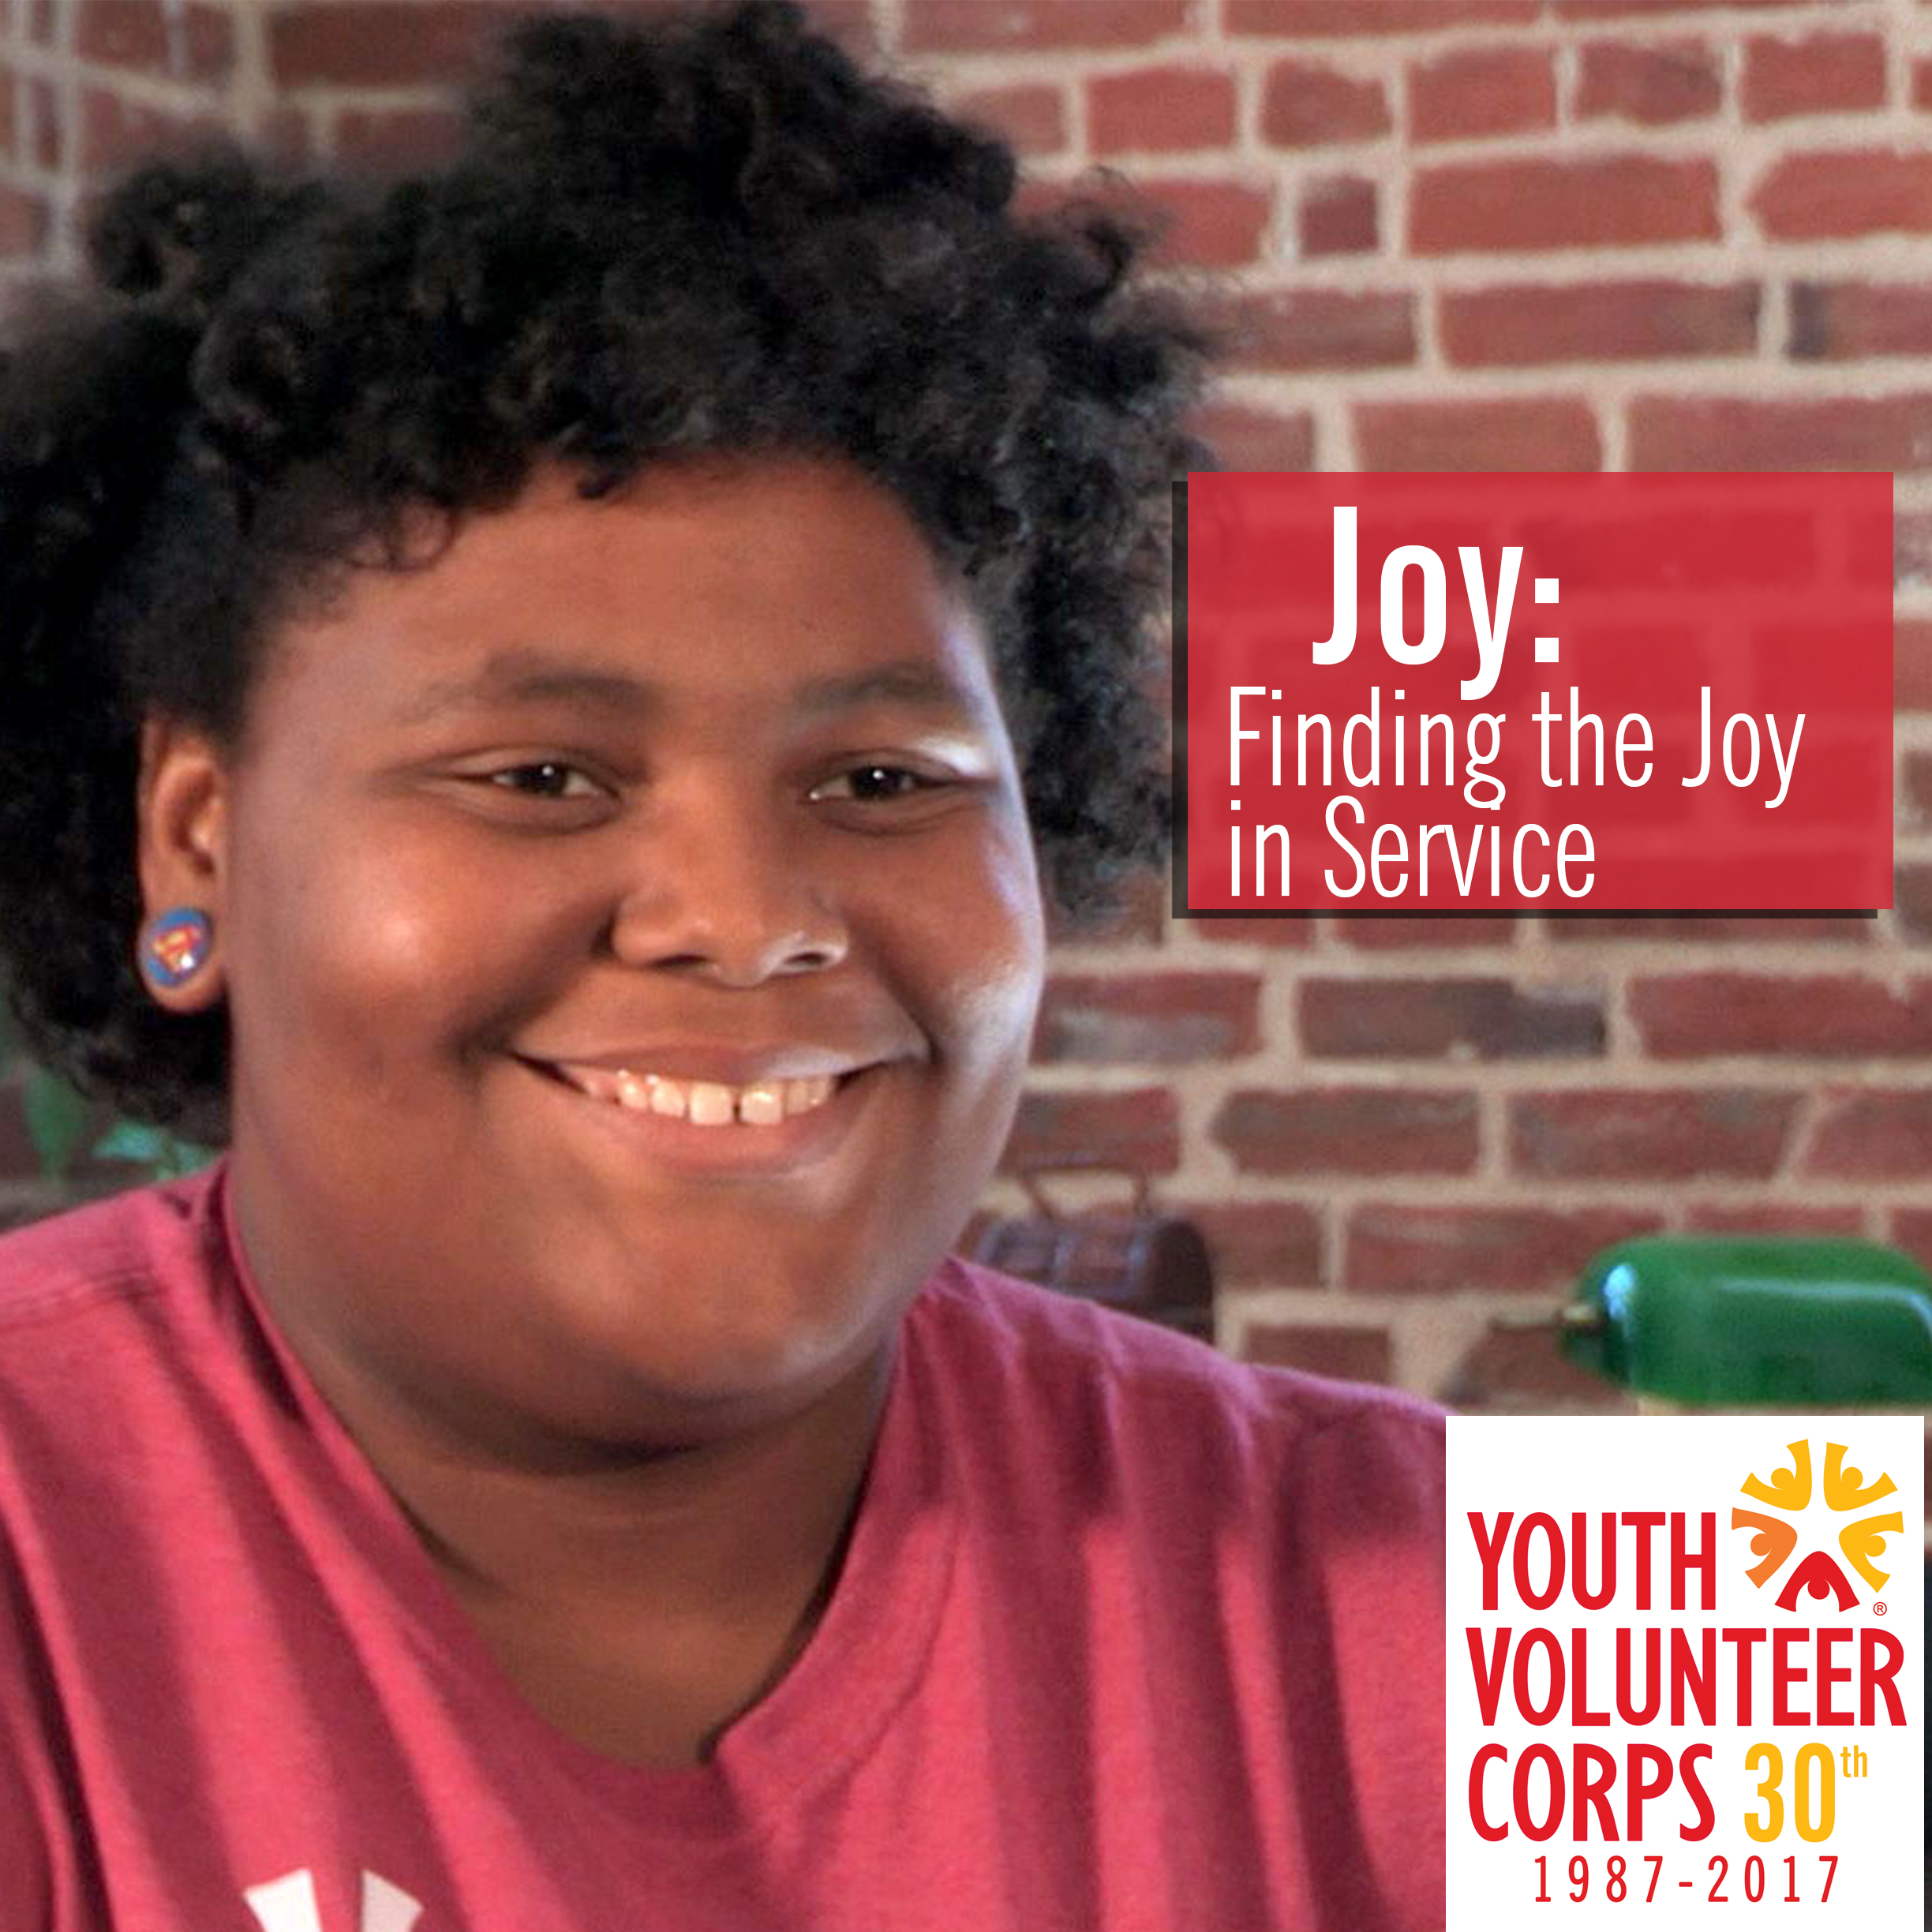 Finding the Joy in Service